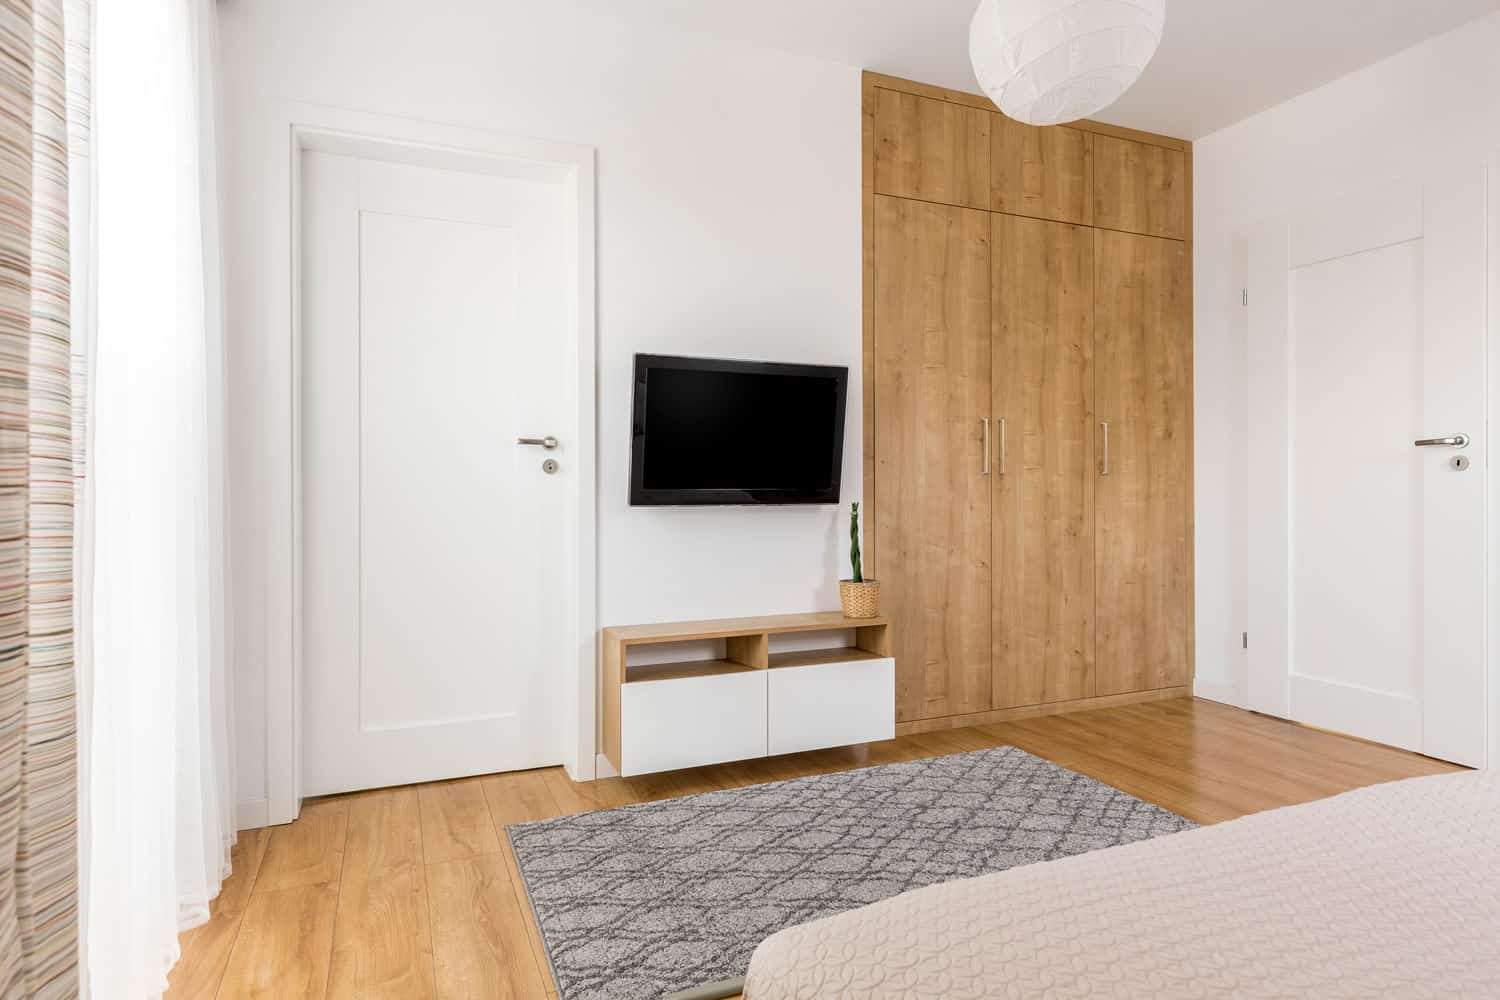 How To Pick The Proper Tv Size For Your Room Apartmentguide Com